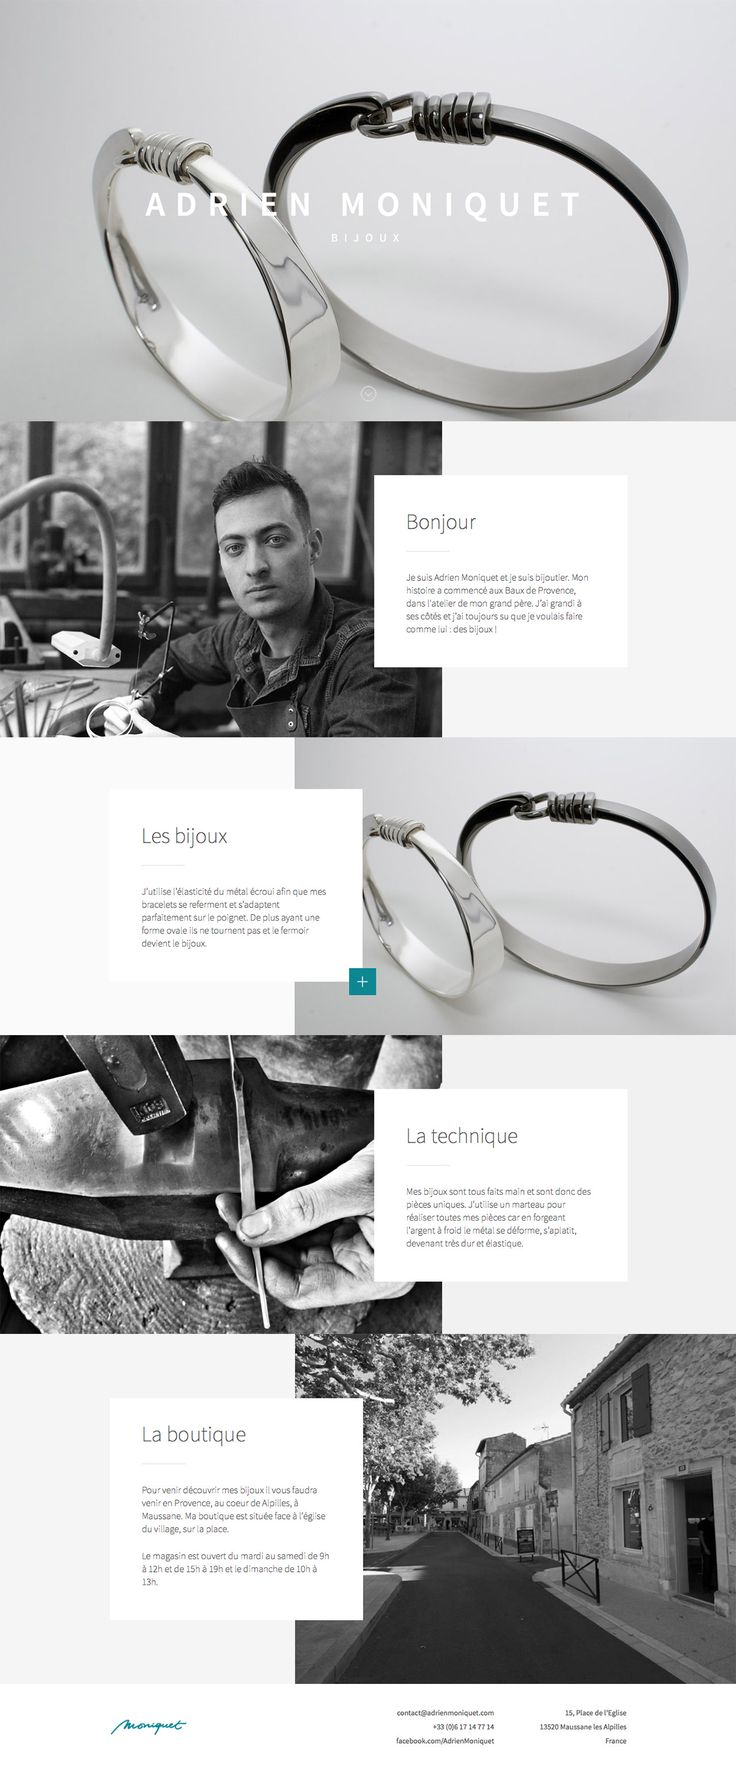 Lovely crisp product imagery in this uniquely arranged responsive one pager for jewellery designer, Adrien Moniquet.